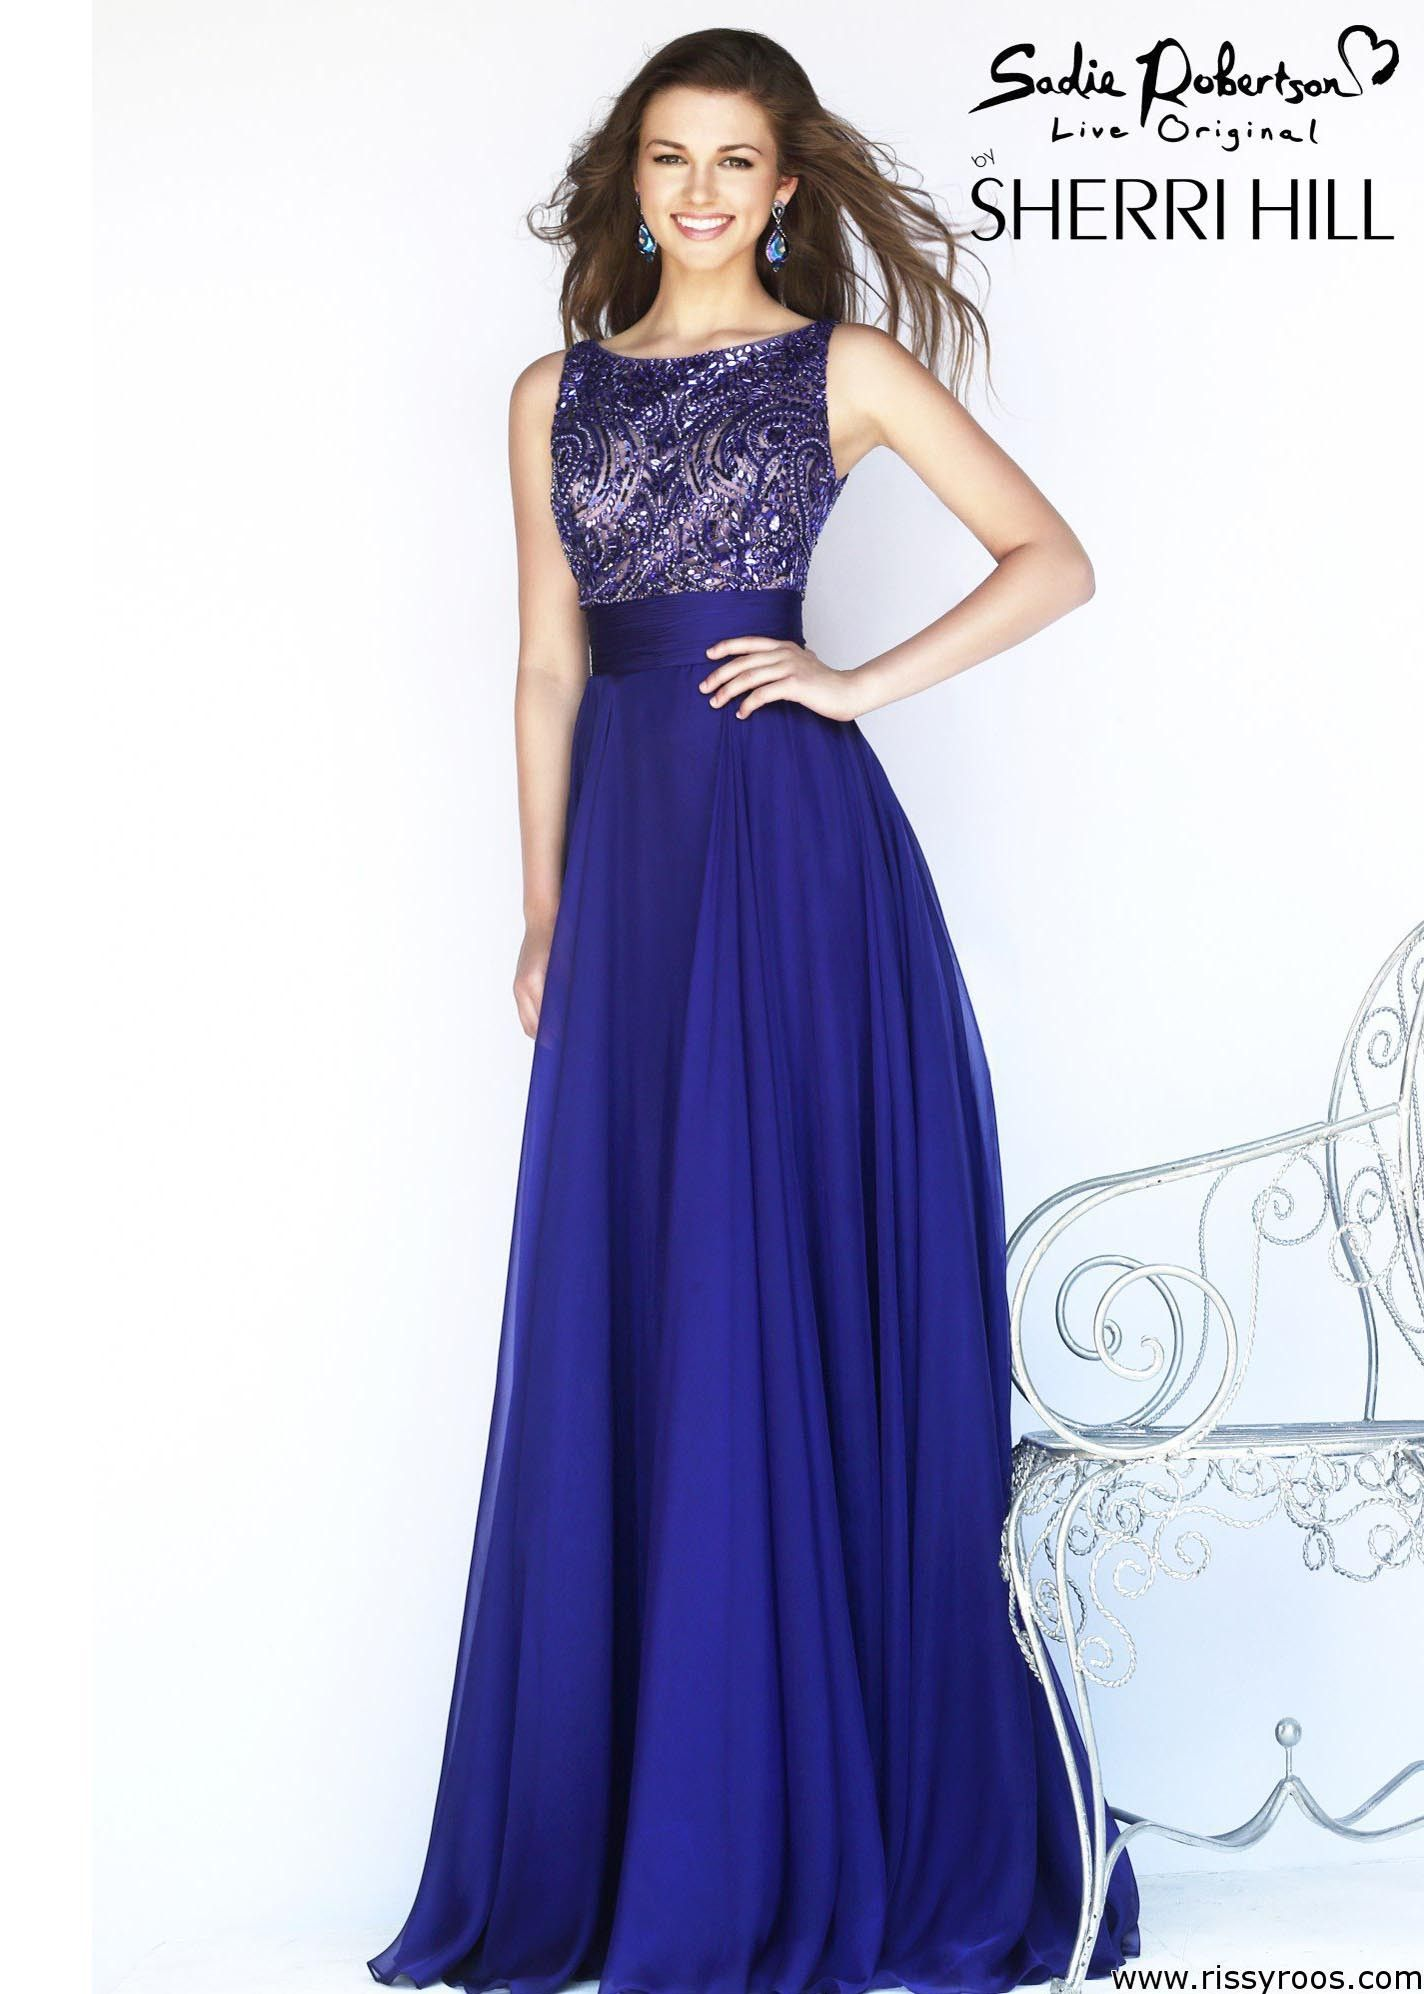 Sherri Hill Dress 11170 | Blue evening gowns, Sherri hill dress ...